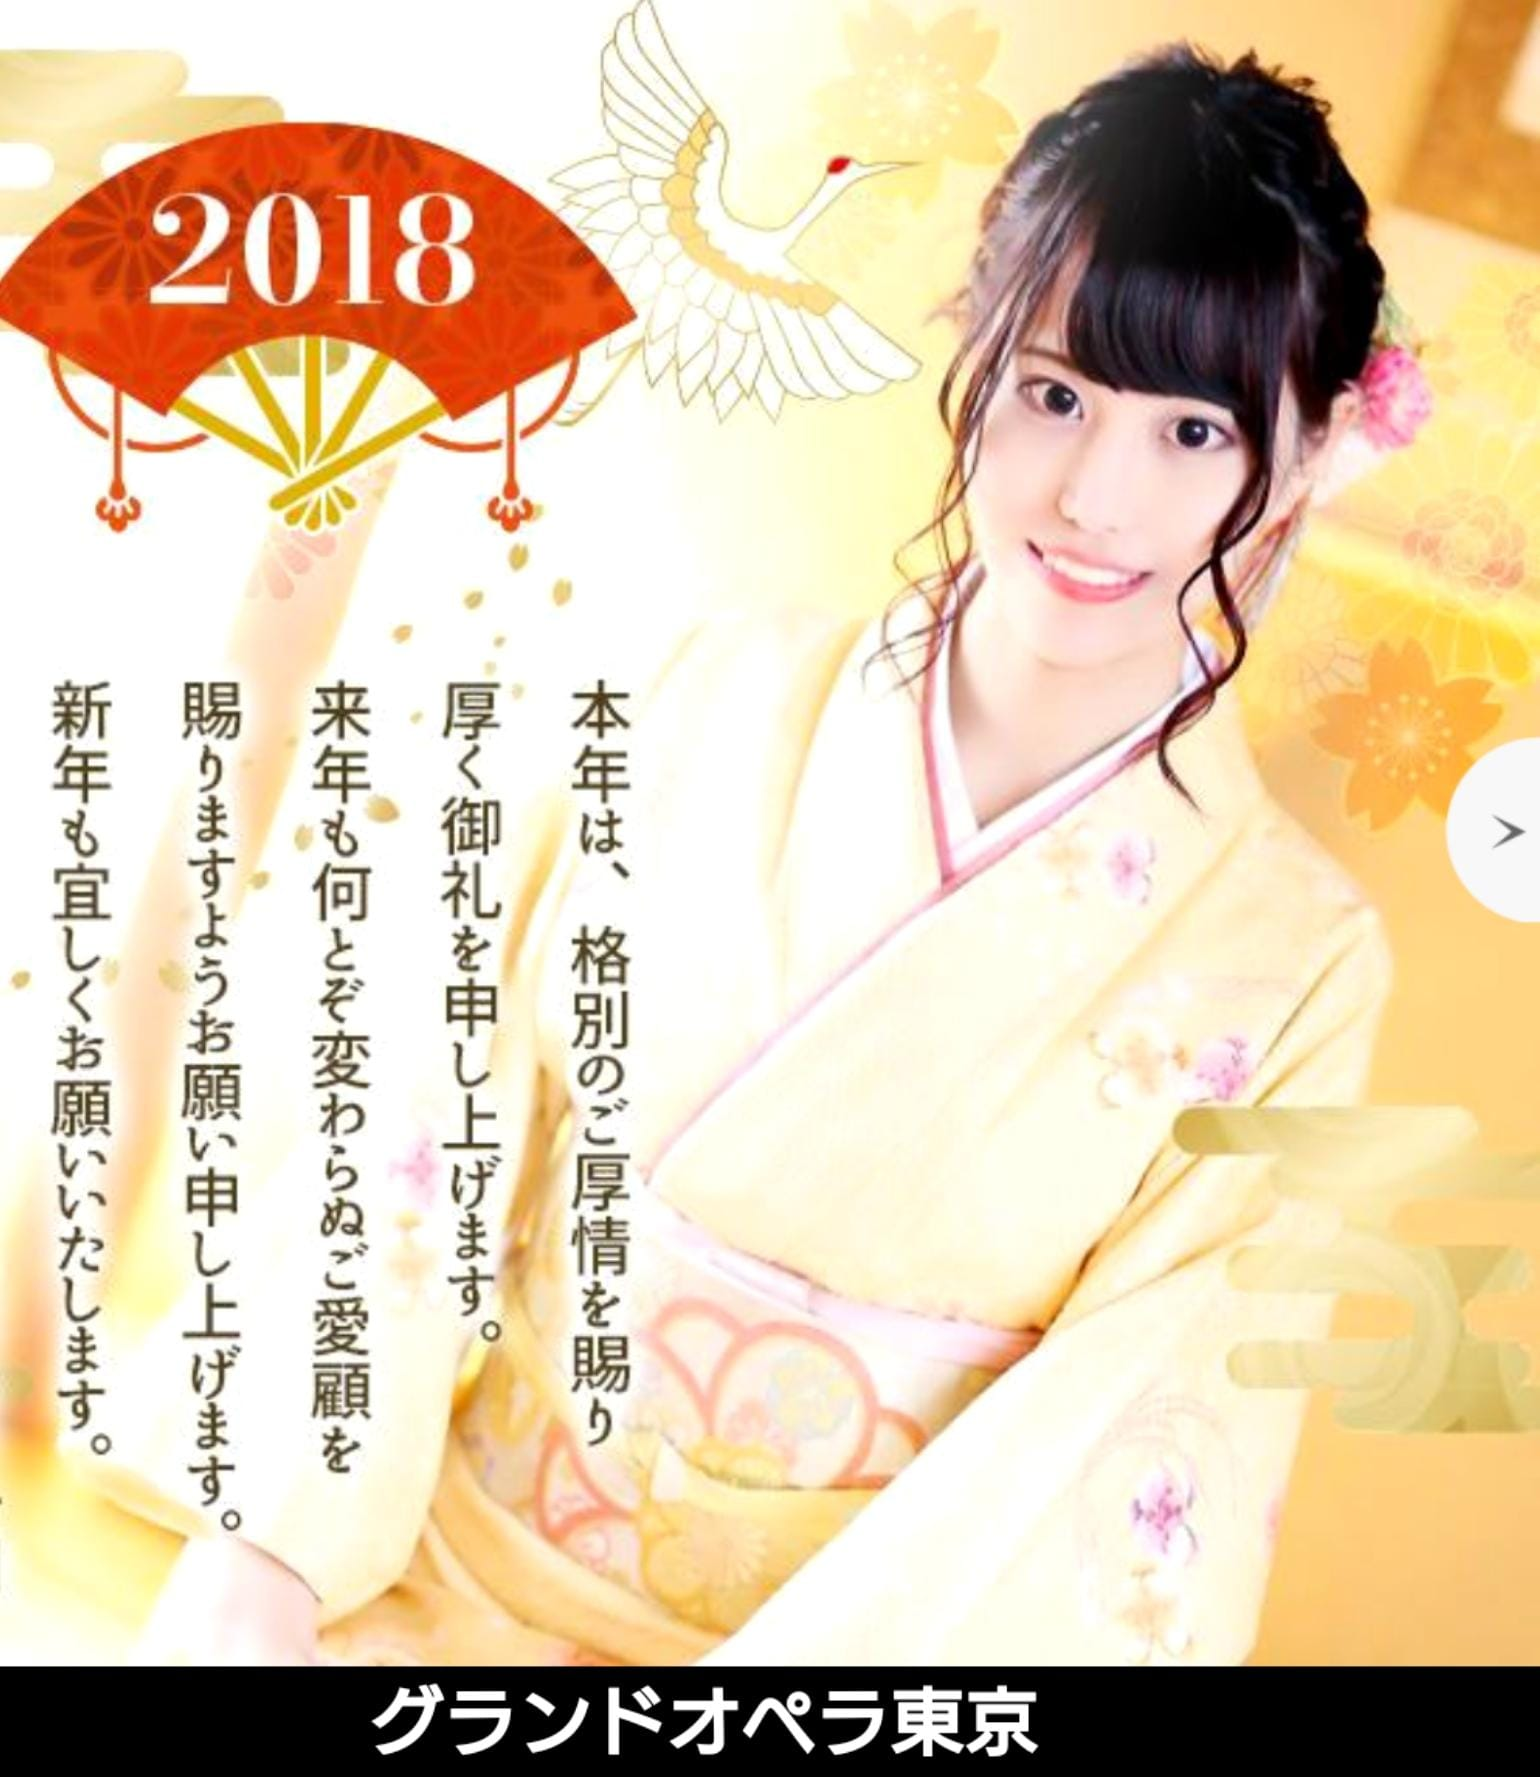 「new year?」01/03(木) 14:11 | 梨里花(リリカ)の写メ・風俗動画